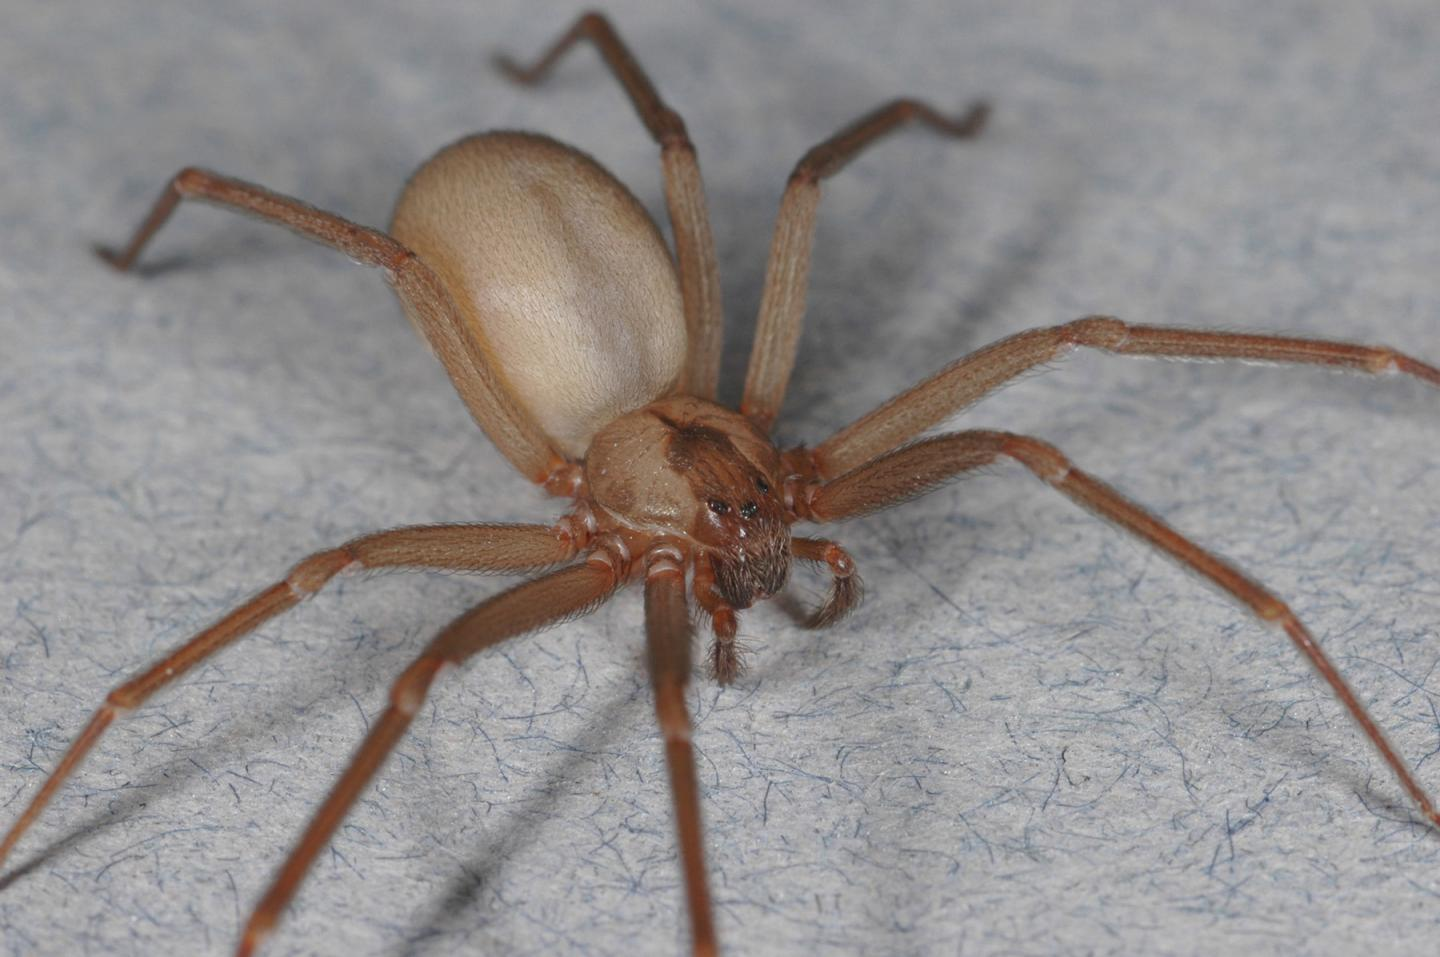 Brown recluse photo by Rick Vetter, UC Riverside